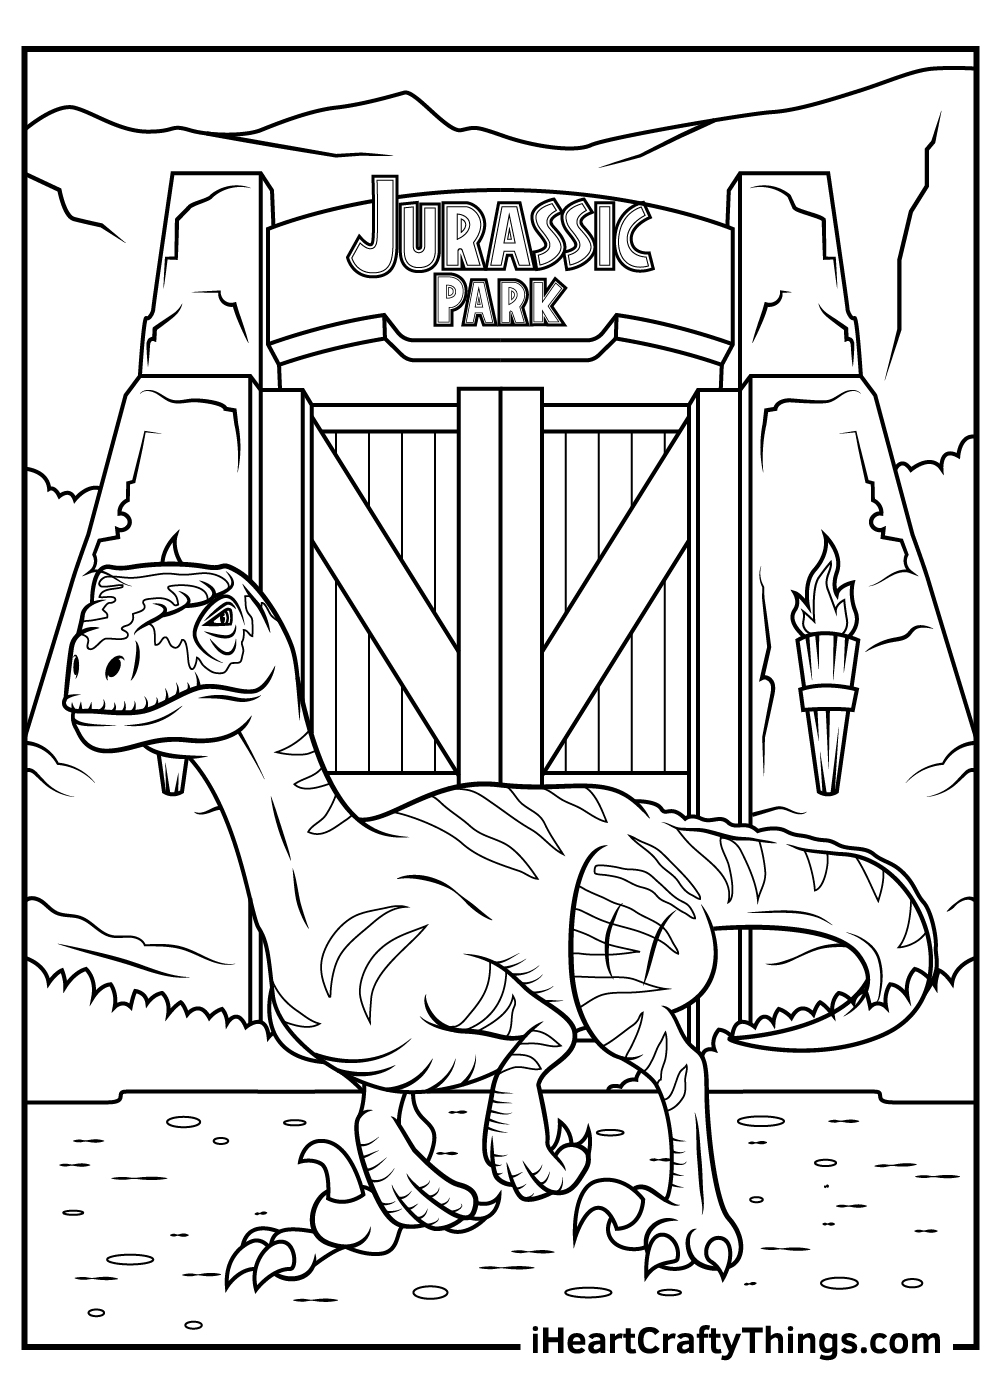 printable jurassic park coloring pages for adults